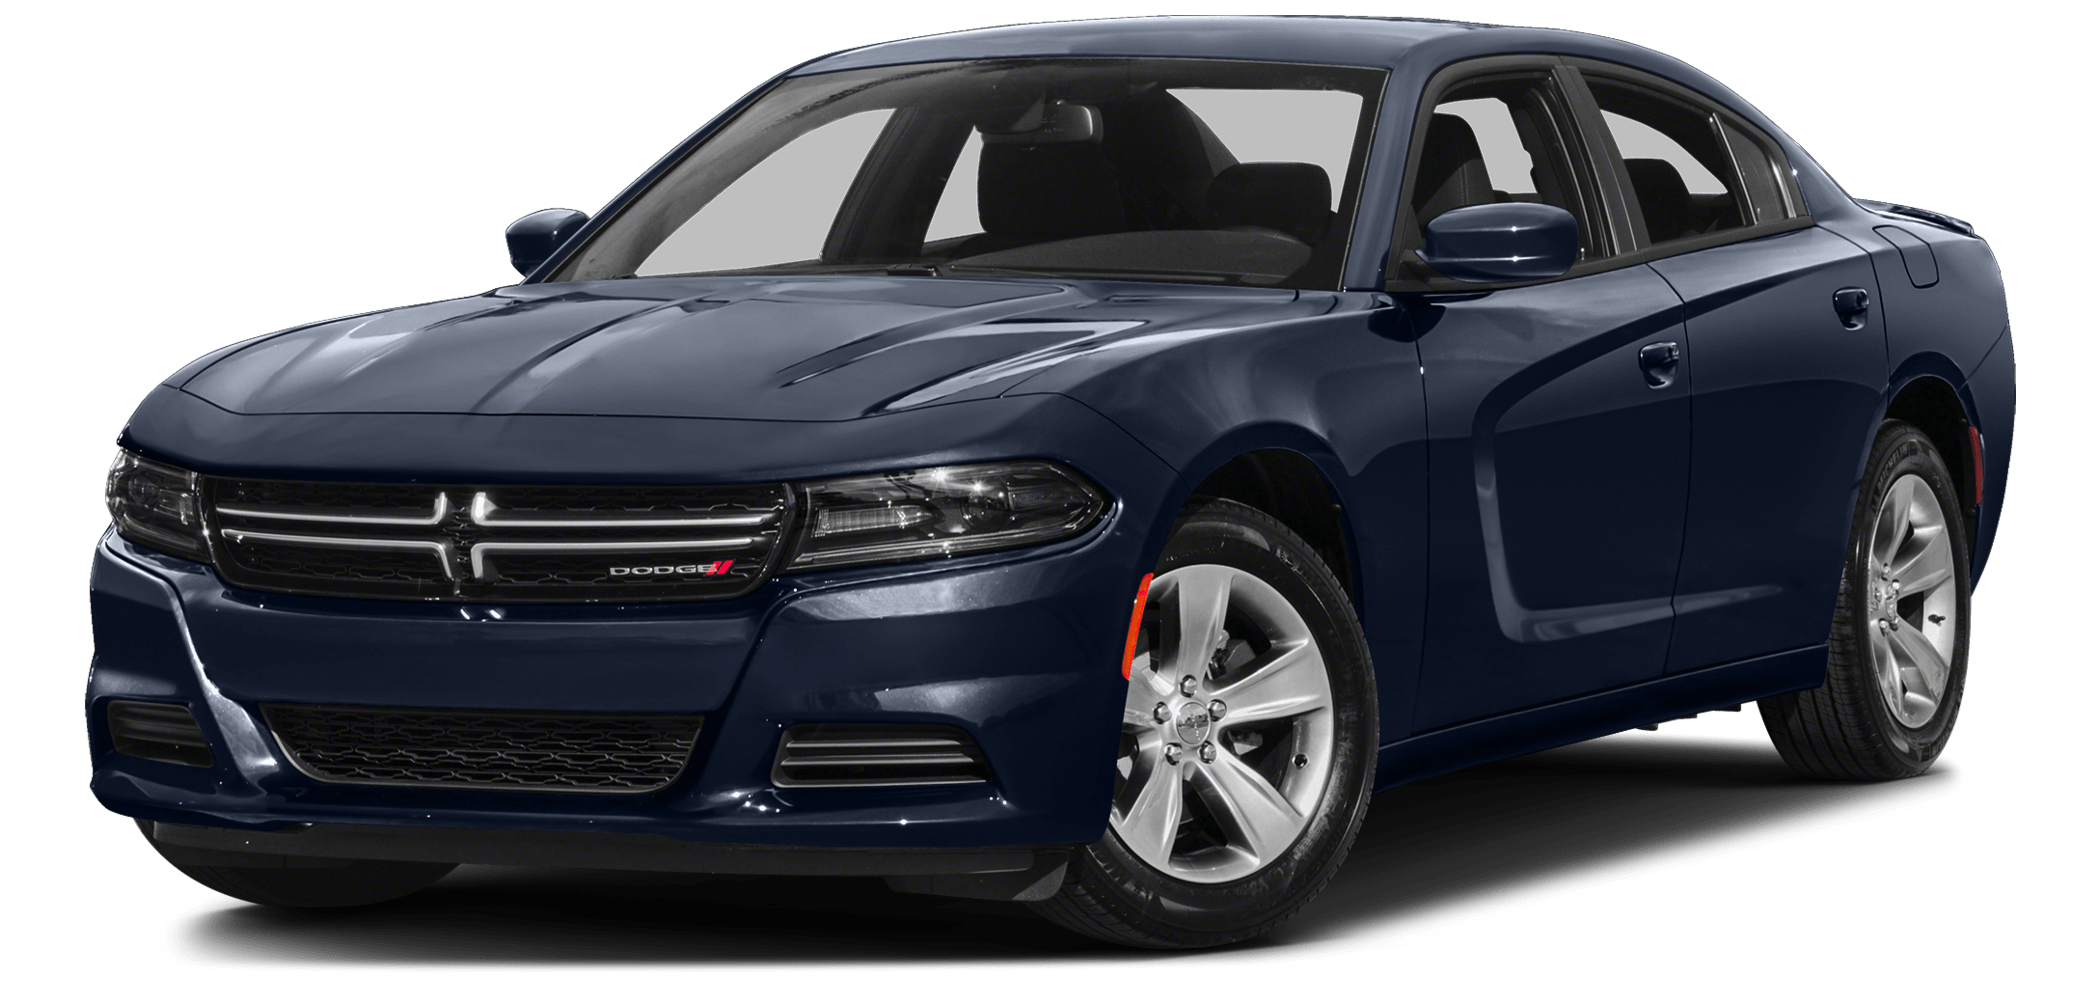 2016 dodge charger png. Miami fl starting